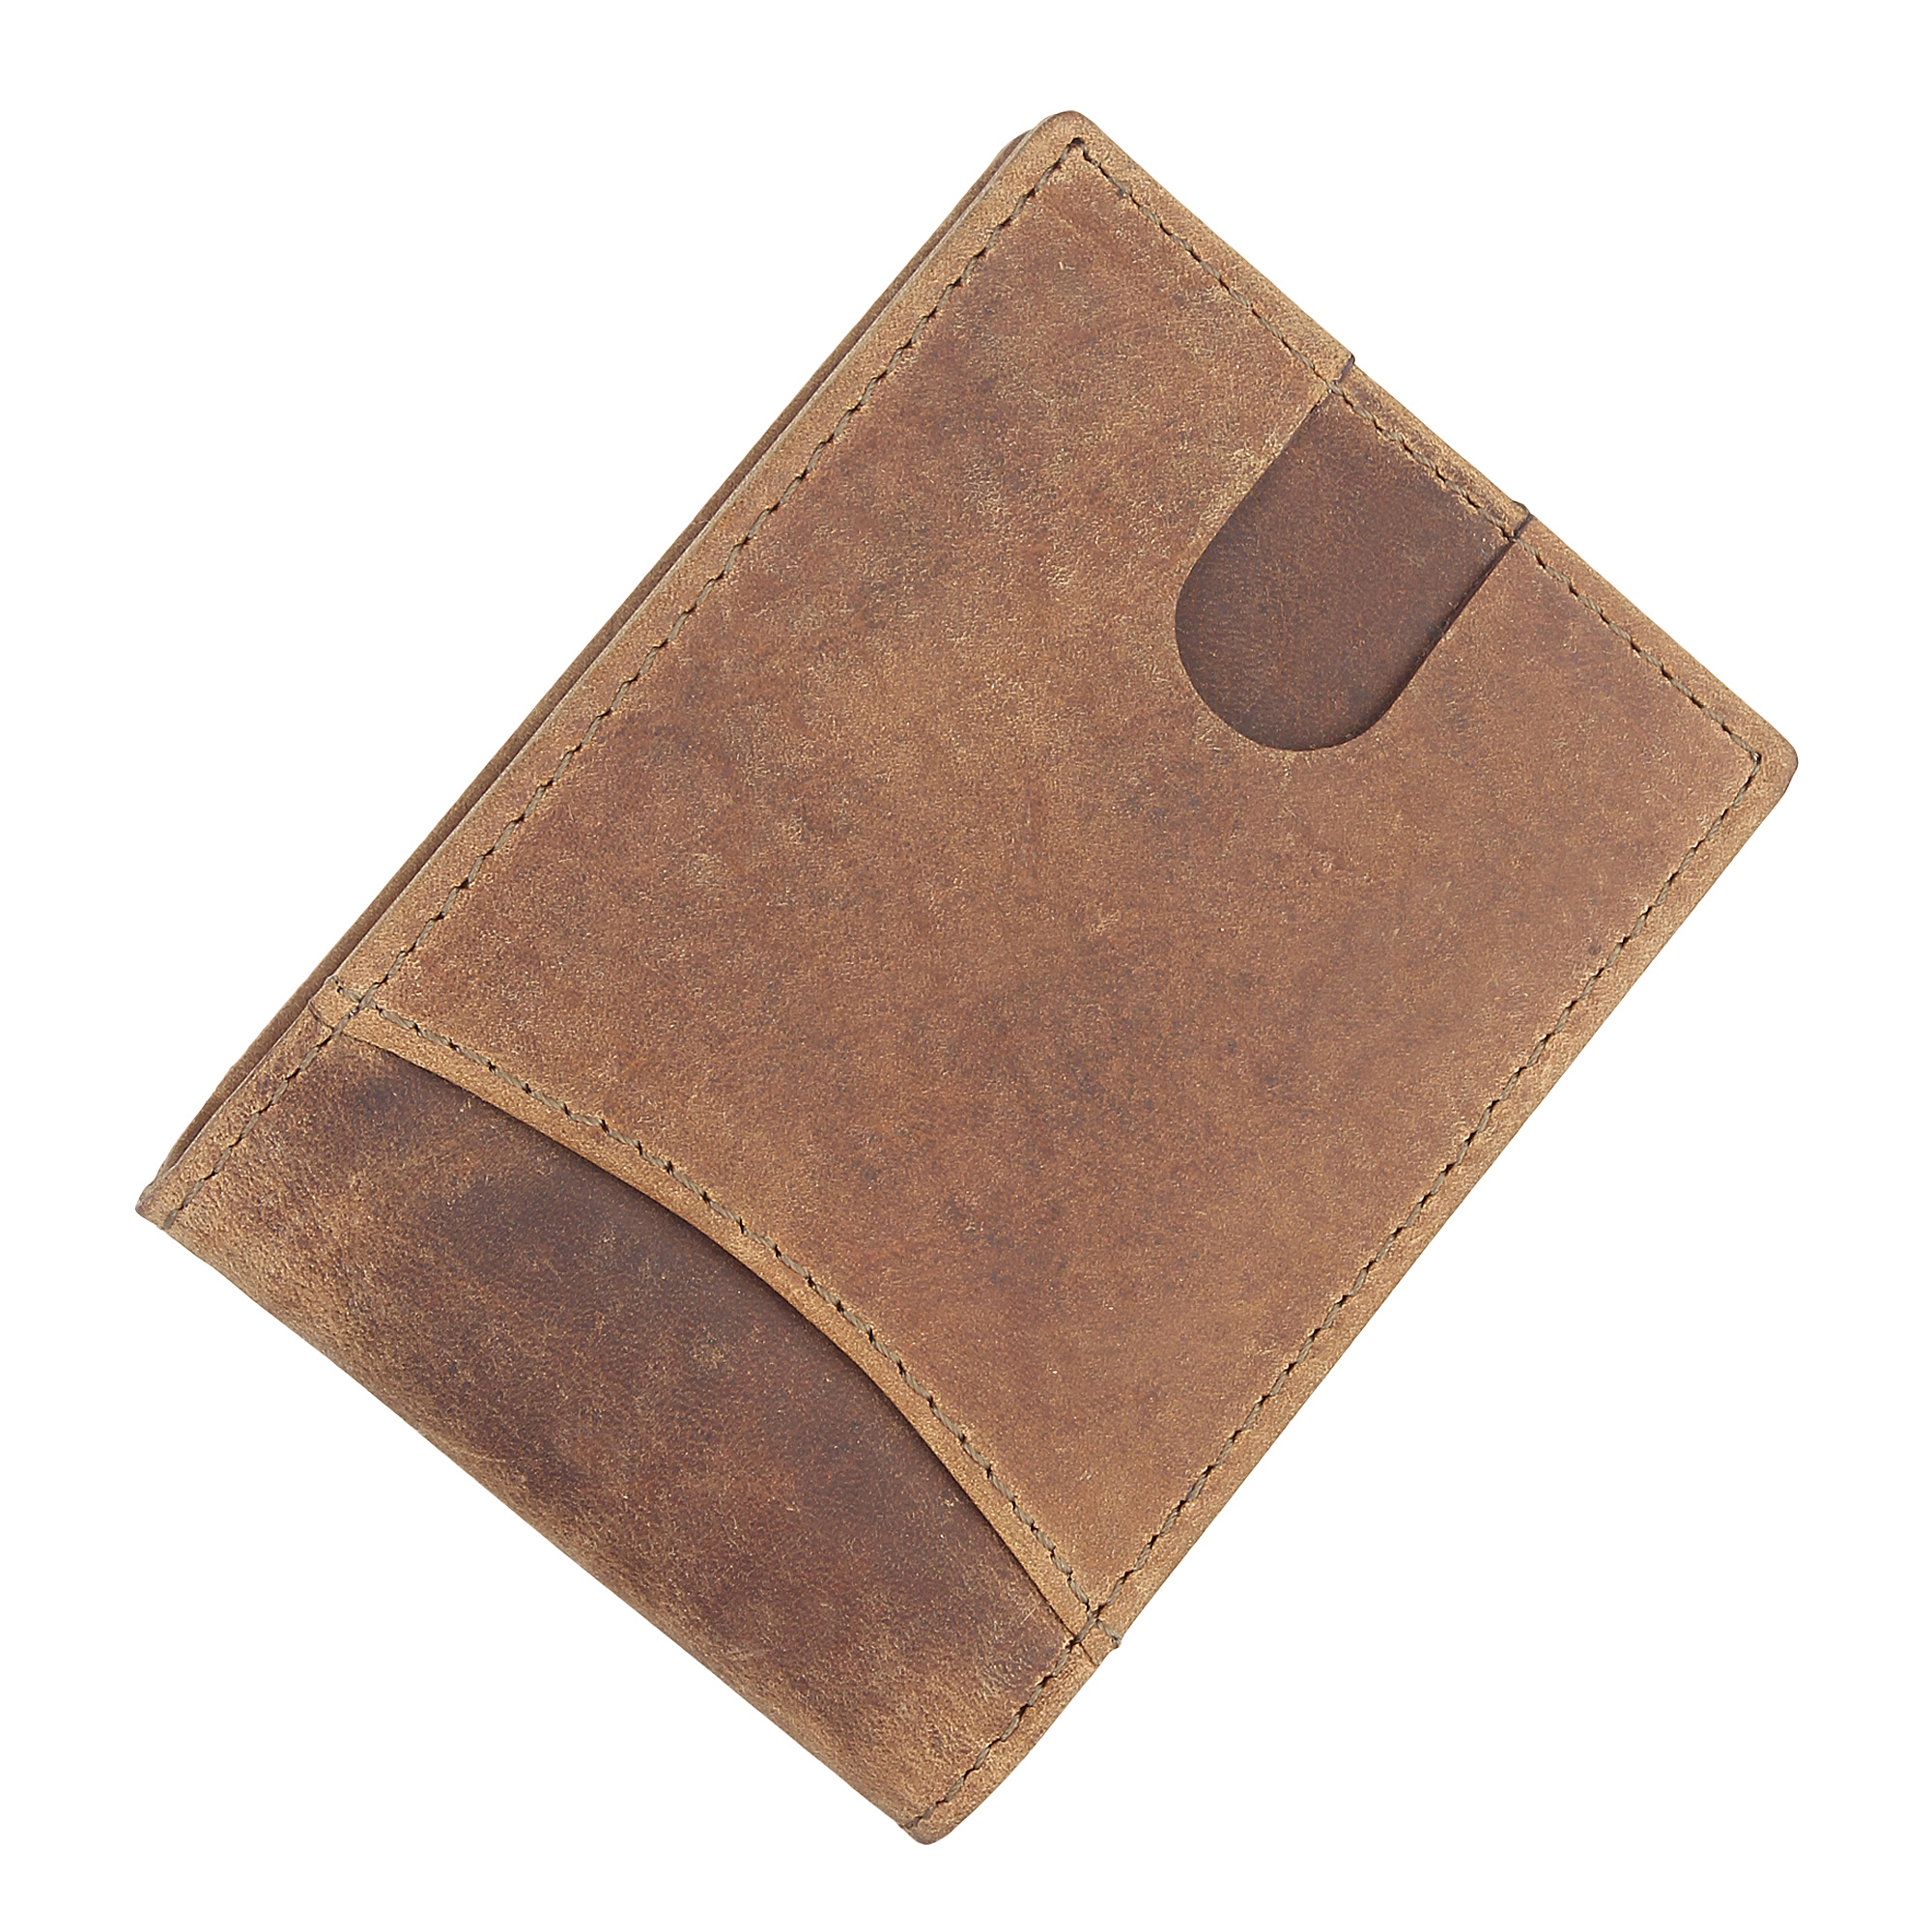 Leather Money Clip Wallet Manufacturers In Kolkata, Money Clip Wallet Suppliers In Kolkata, Money Clip Wallet Wholesalers In Kolkata, Money Clip Wallet Traders In Kolkata